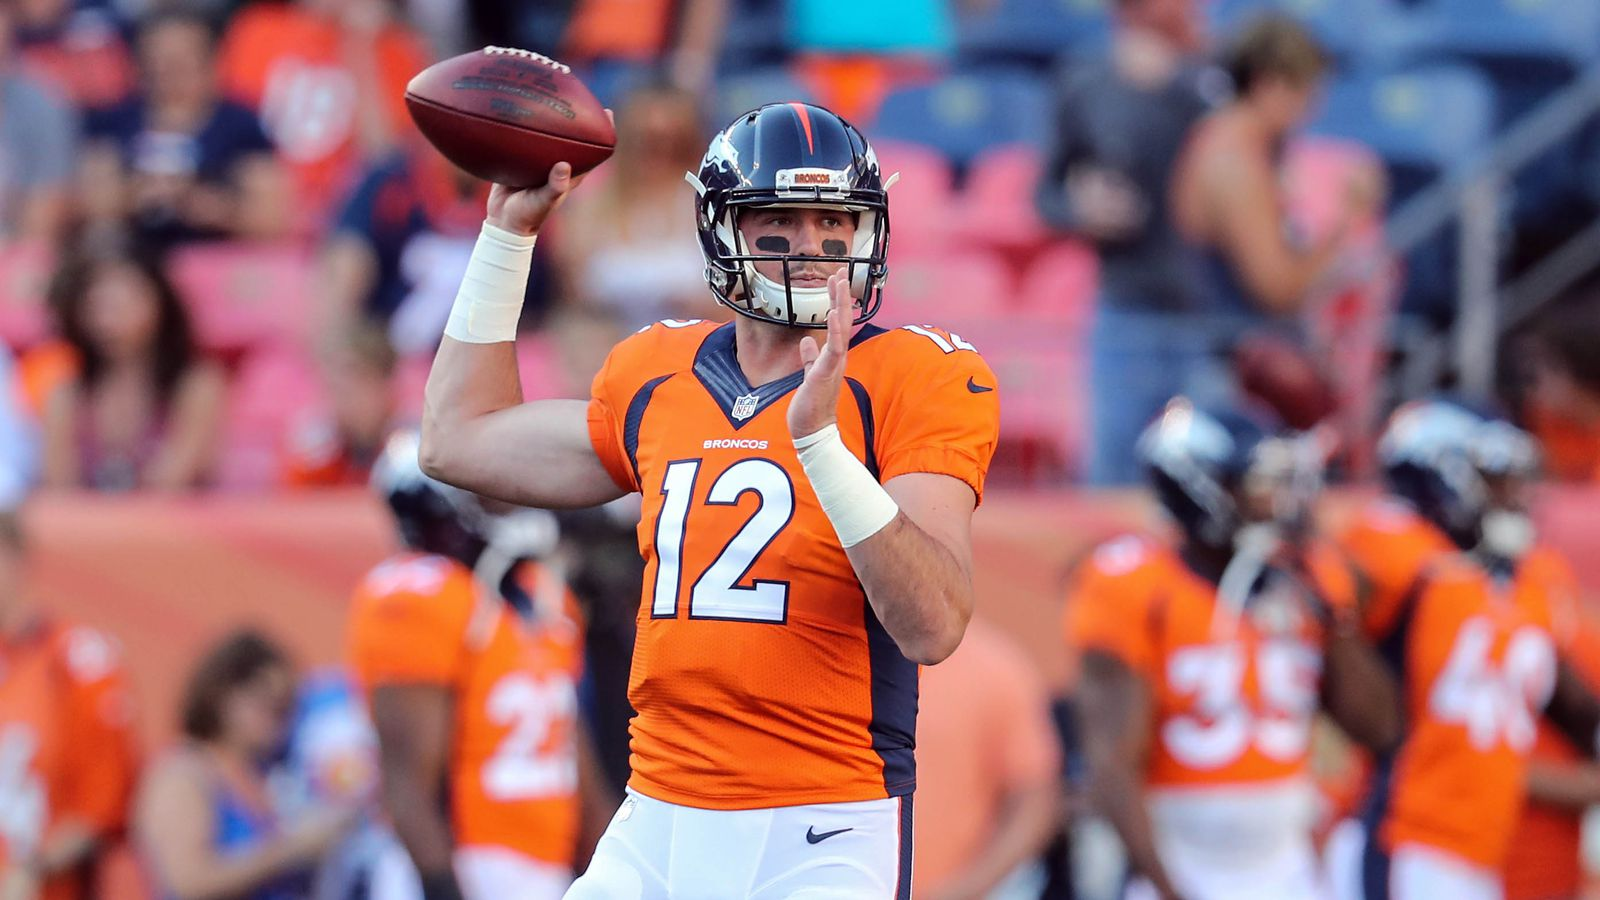 Paxton Lynch contract and salary cap details full contract breakdowns salaries signing bonus roster bonus dead money and valuations